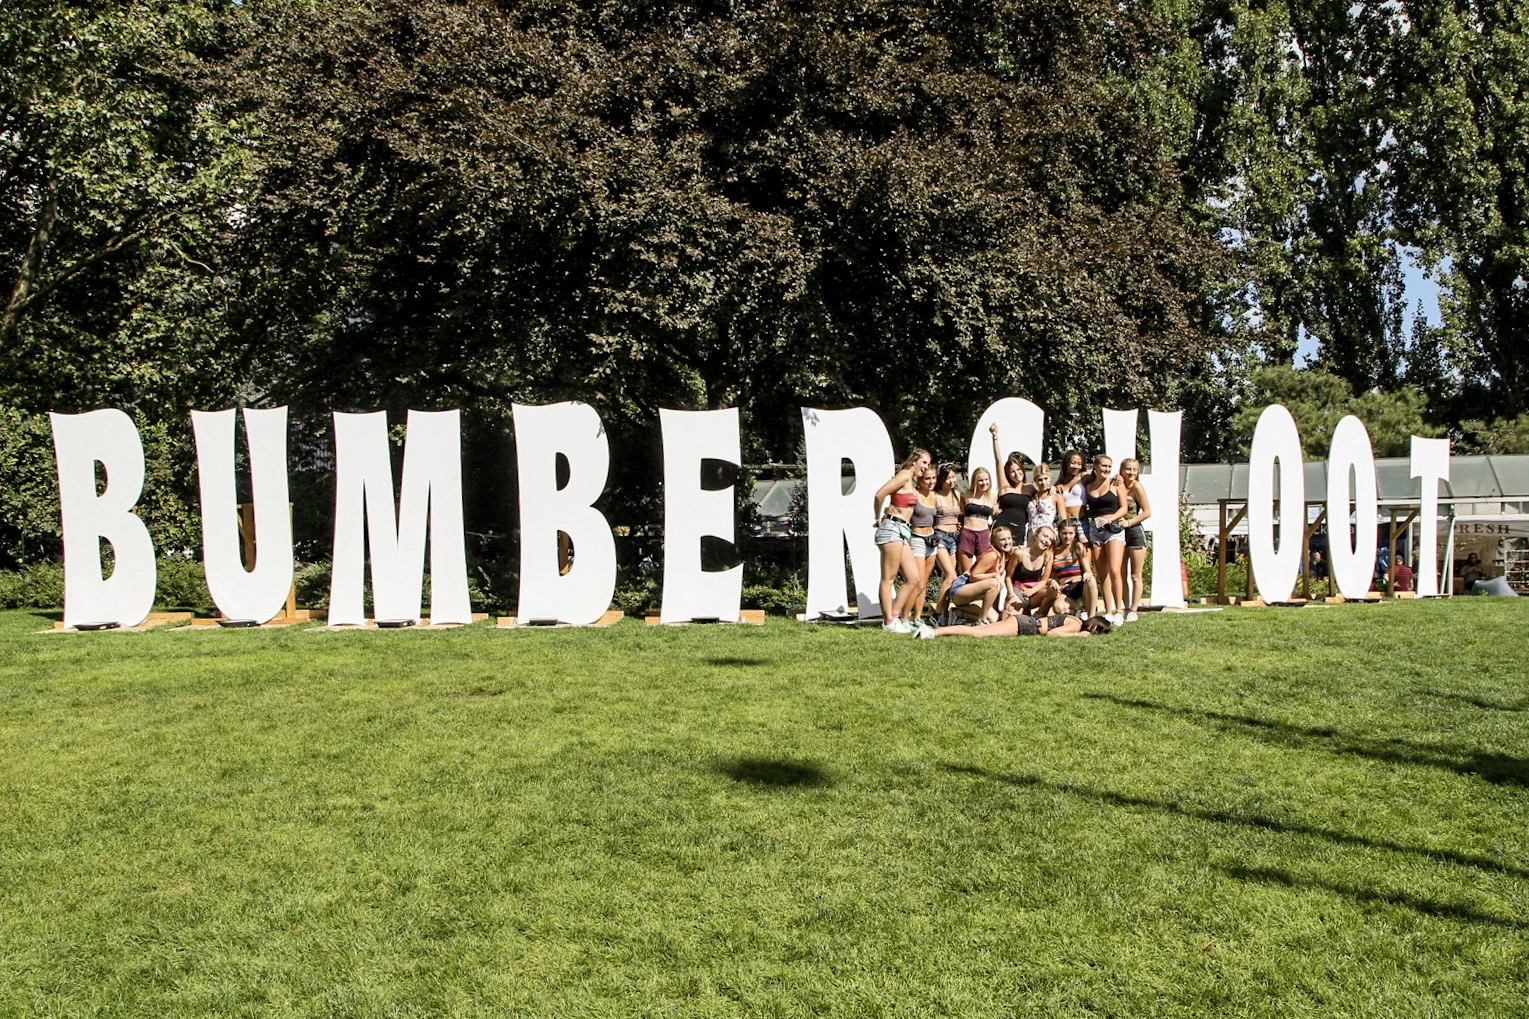 Bumbershoot is back for another year in Seattle as thousands of people flocked to the Seattle Center to see big headliners such as Lil Wayne, The Chainsmokers, J. Cole and SZA. This weekend our team at Seattle Refined will be exploring the great music, fashion, and hidden moments of this music festival that is approaching almost a half century old. (Stephanie Dore / Seattle Refined)